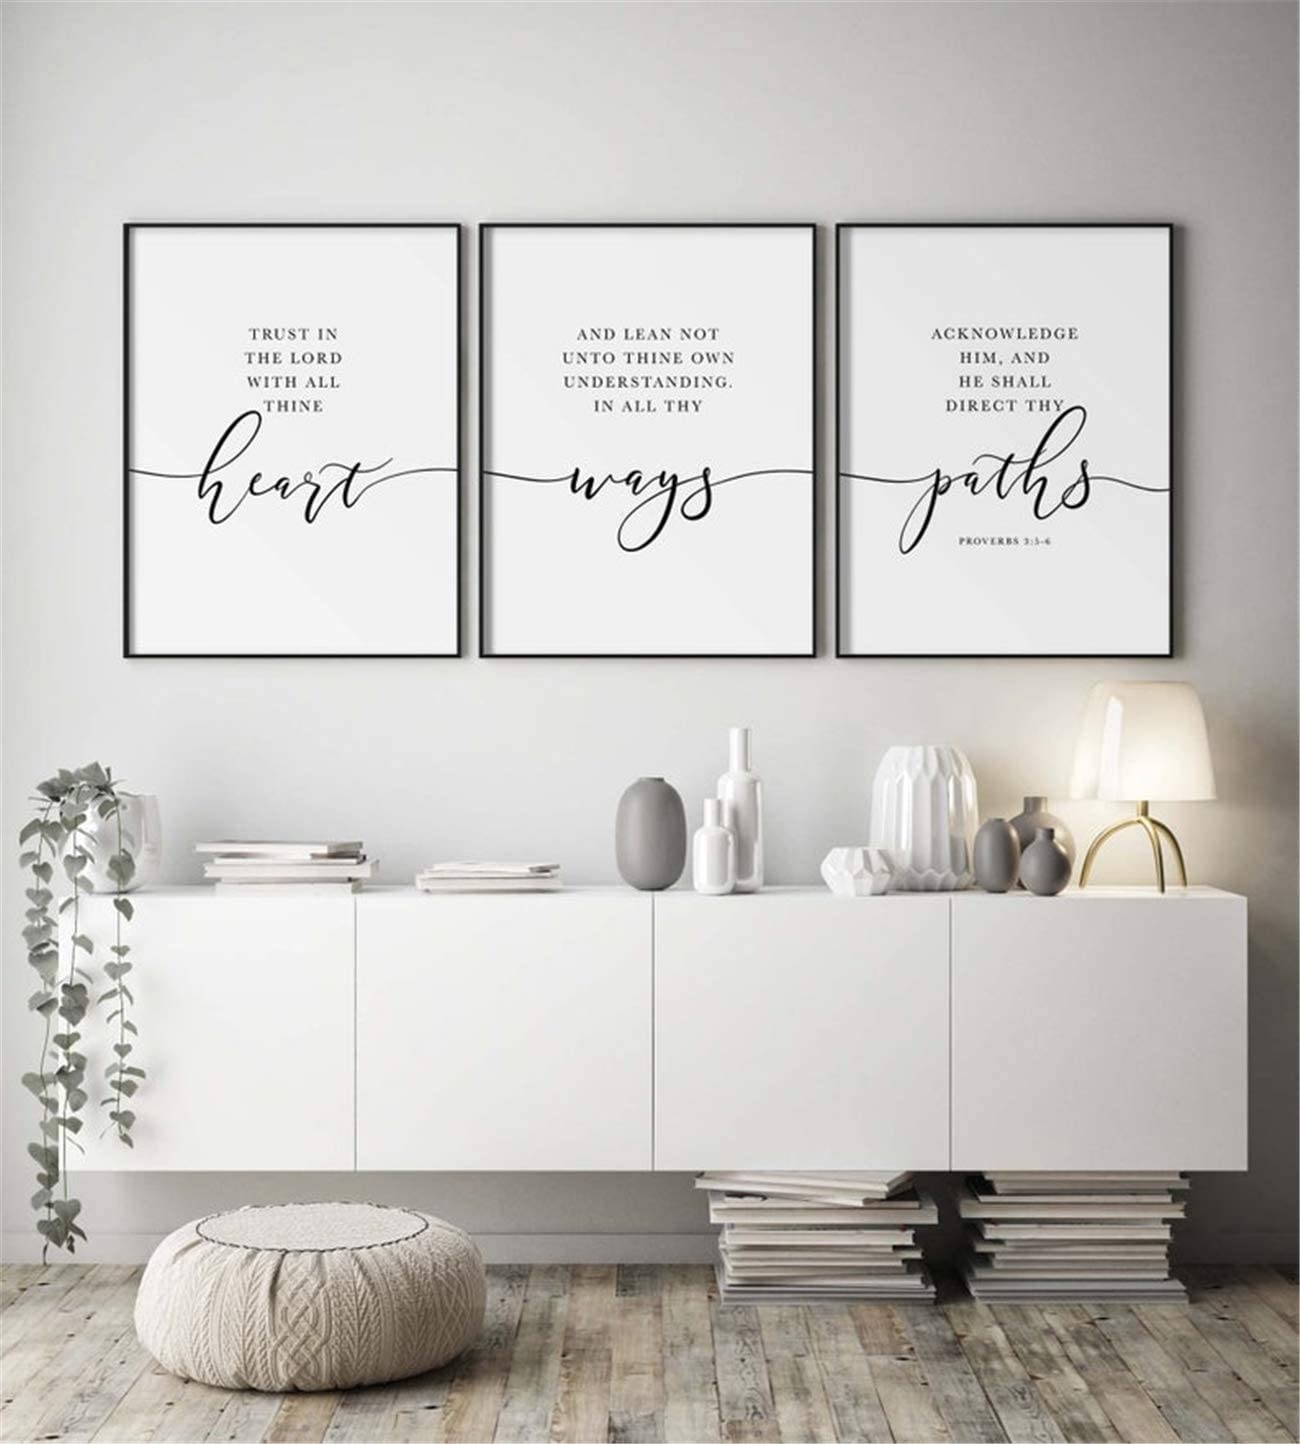 NATVVA 3 Pieces Black White Wall Art Canvas Painting Trust in The Lord Quote Posters Prints Bible Verse Quote Wall Pictures for Christian Room Decor Framed Ready to Hang